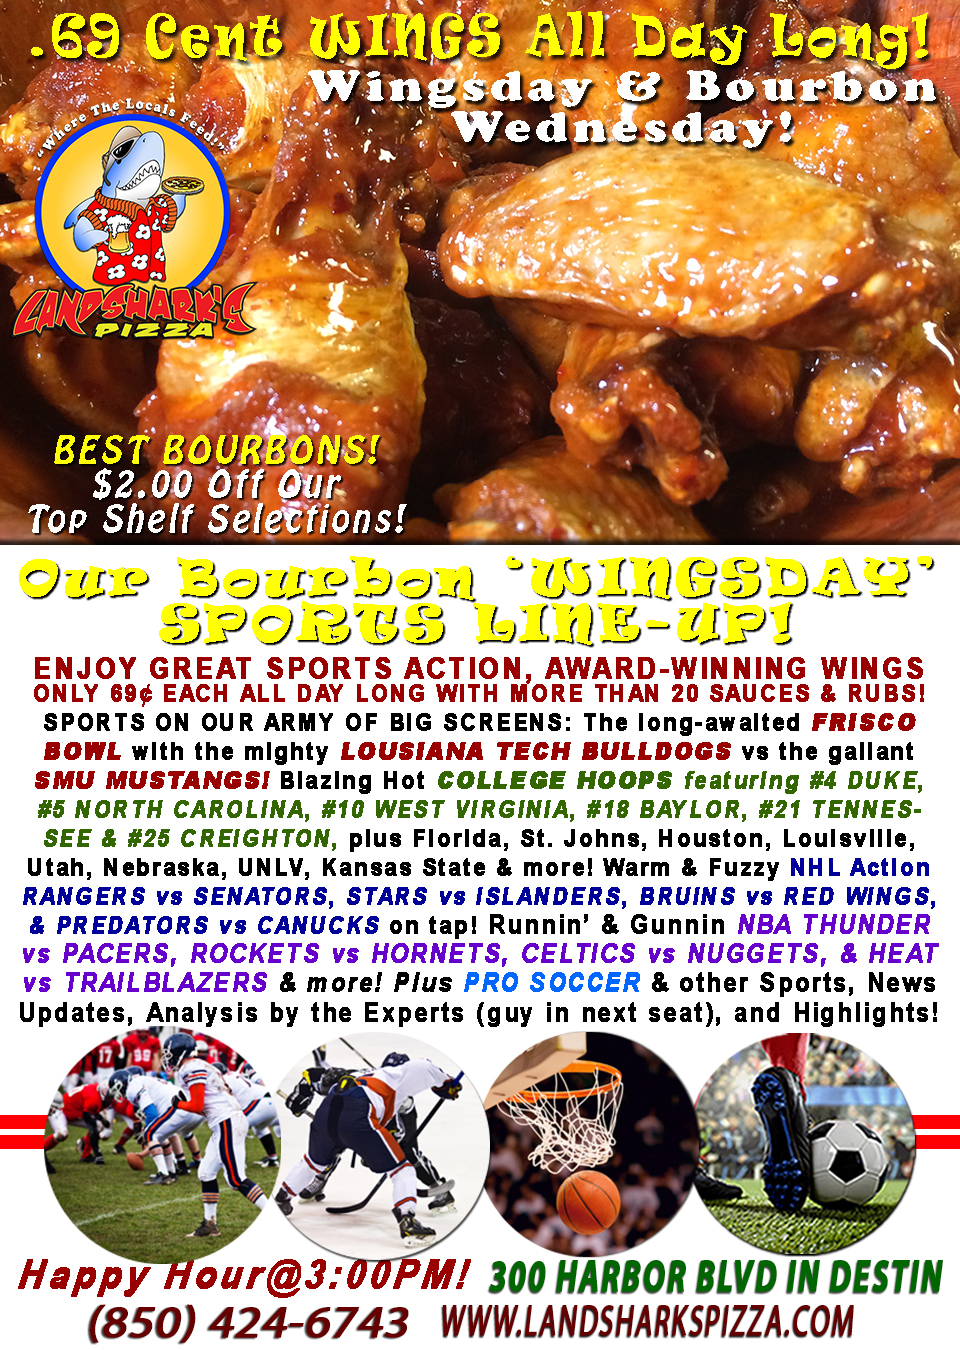 WINGSDAY FRISCO BOWL, #4 Duke & #5 North Carolina Hoops, NBA & Wings 69¢ each ALL DAY & $2 OFF ALL BOURBONS!